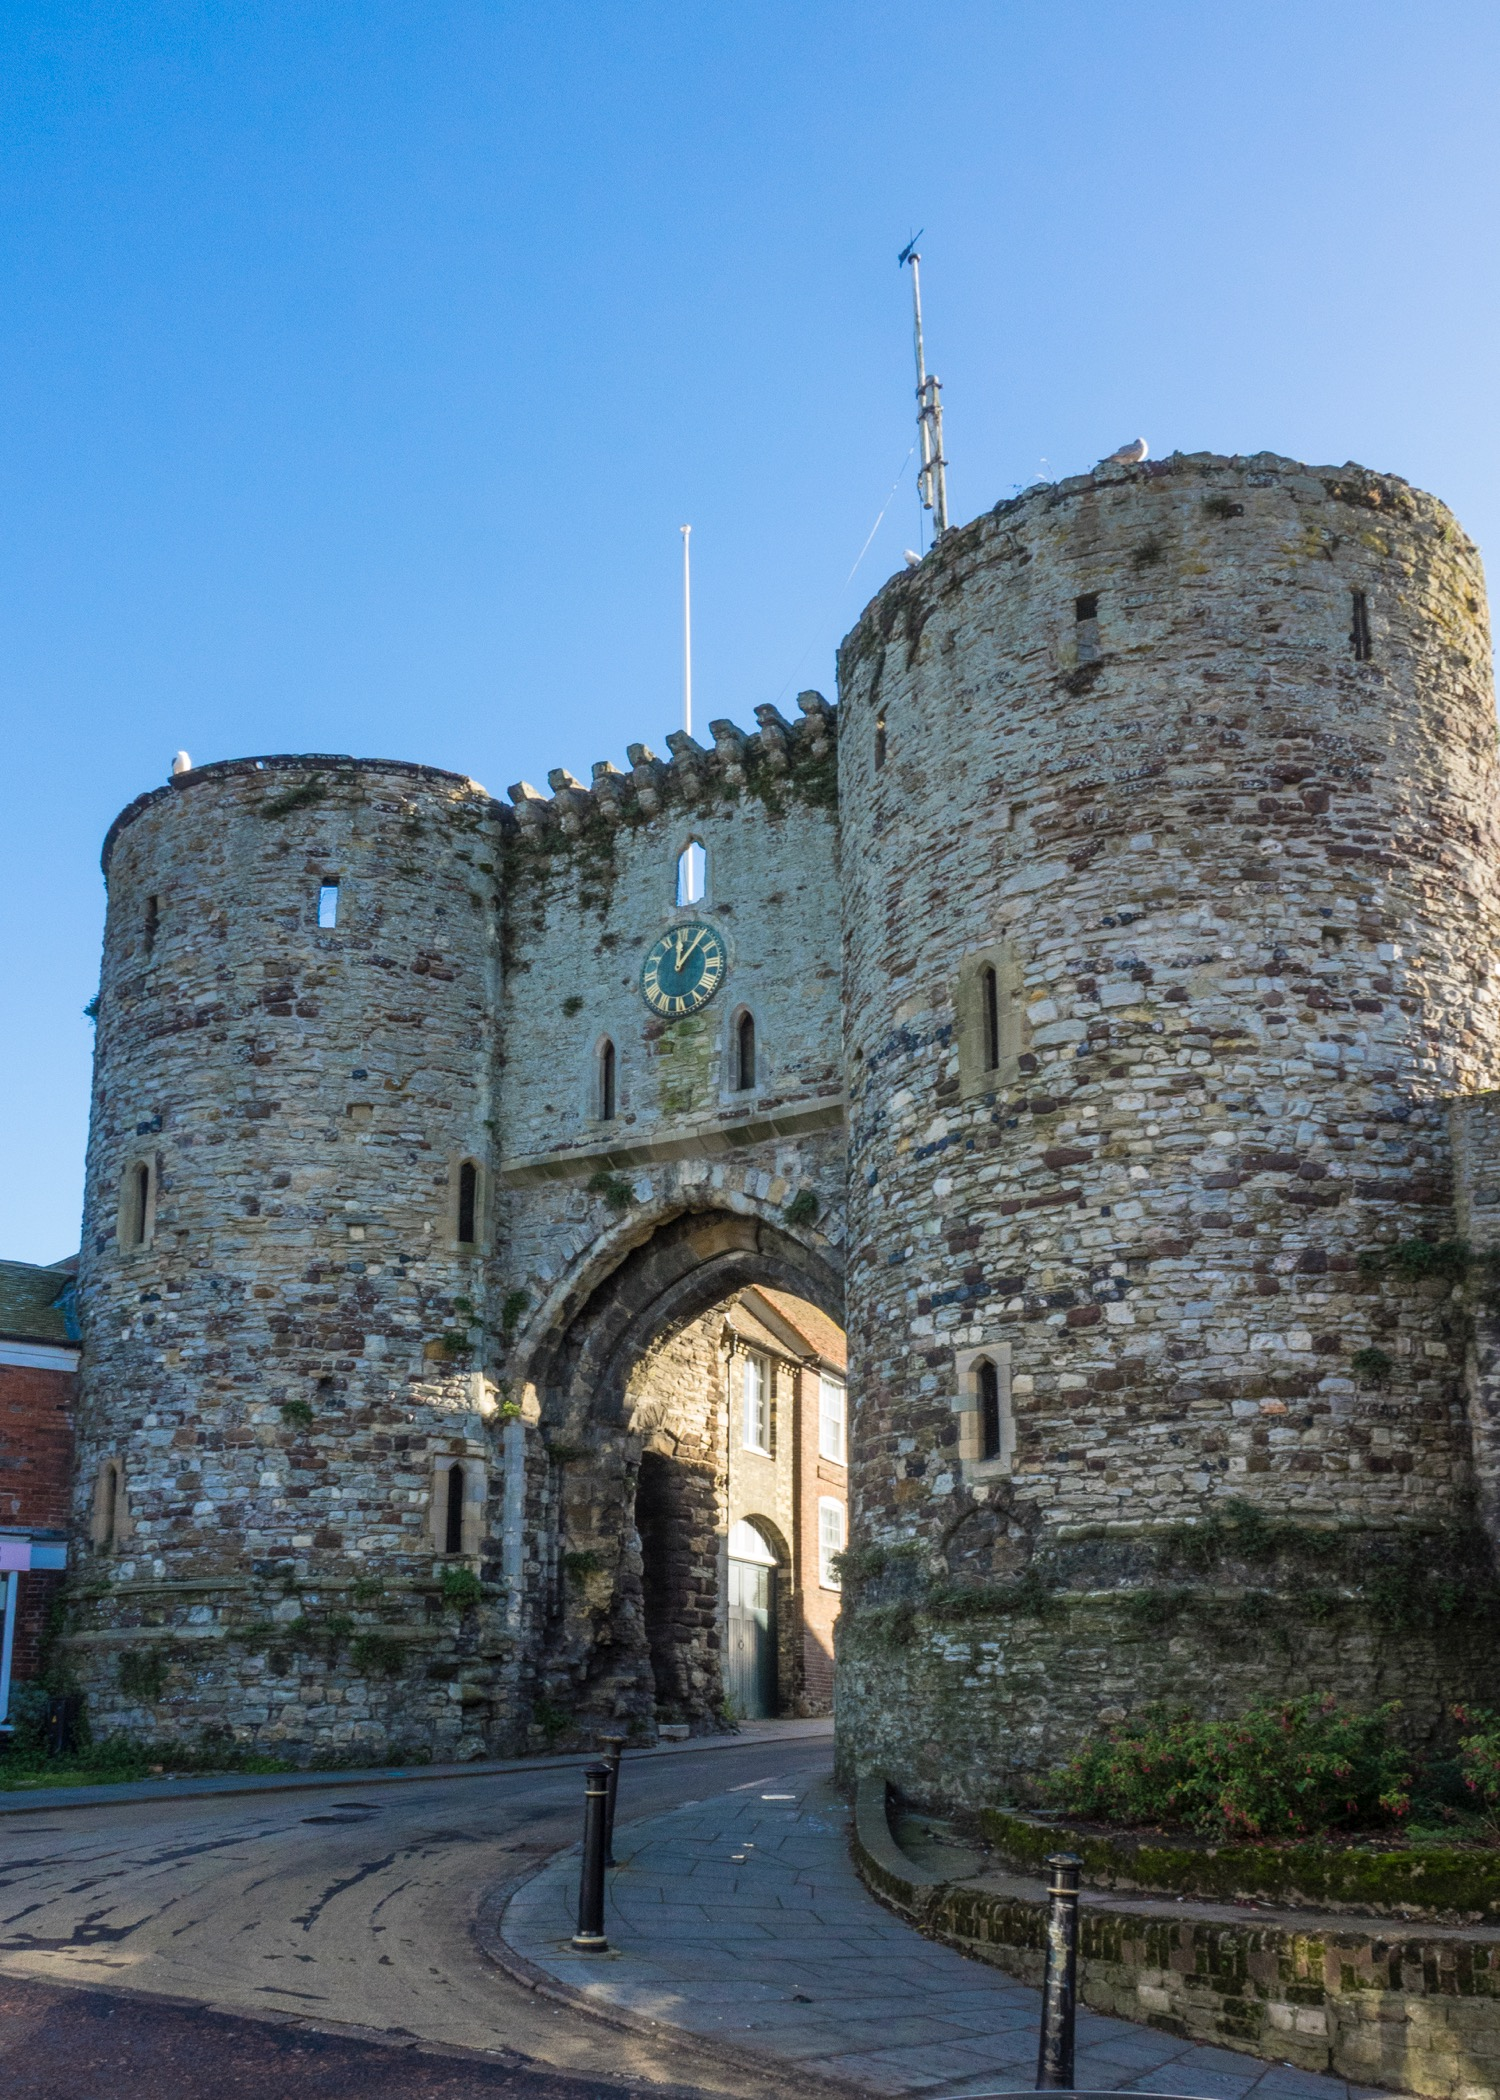 The old gates to the old city of Rye